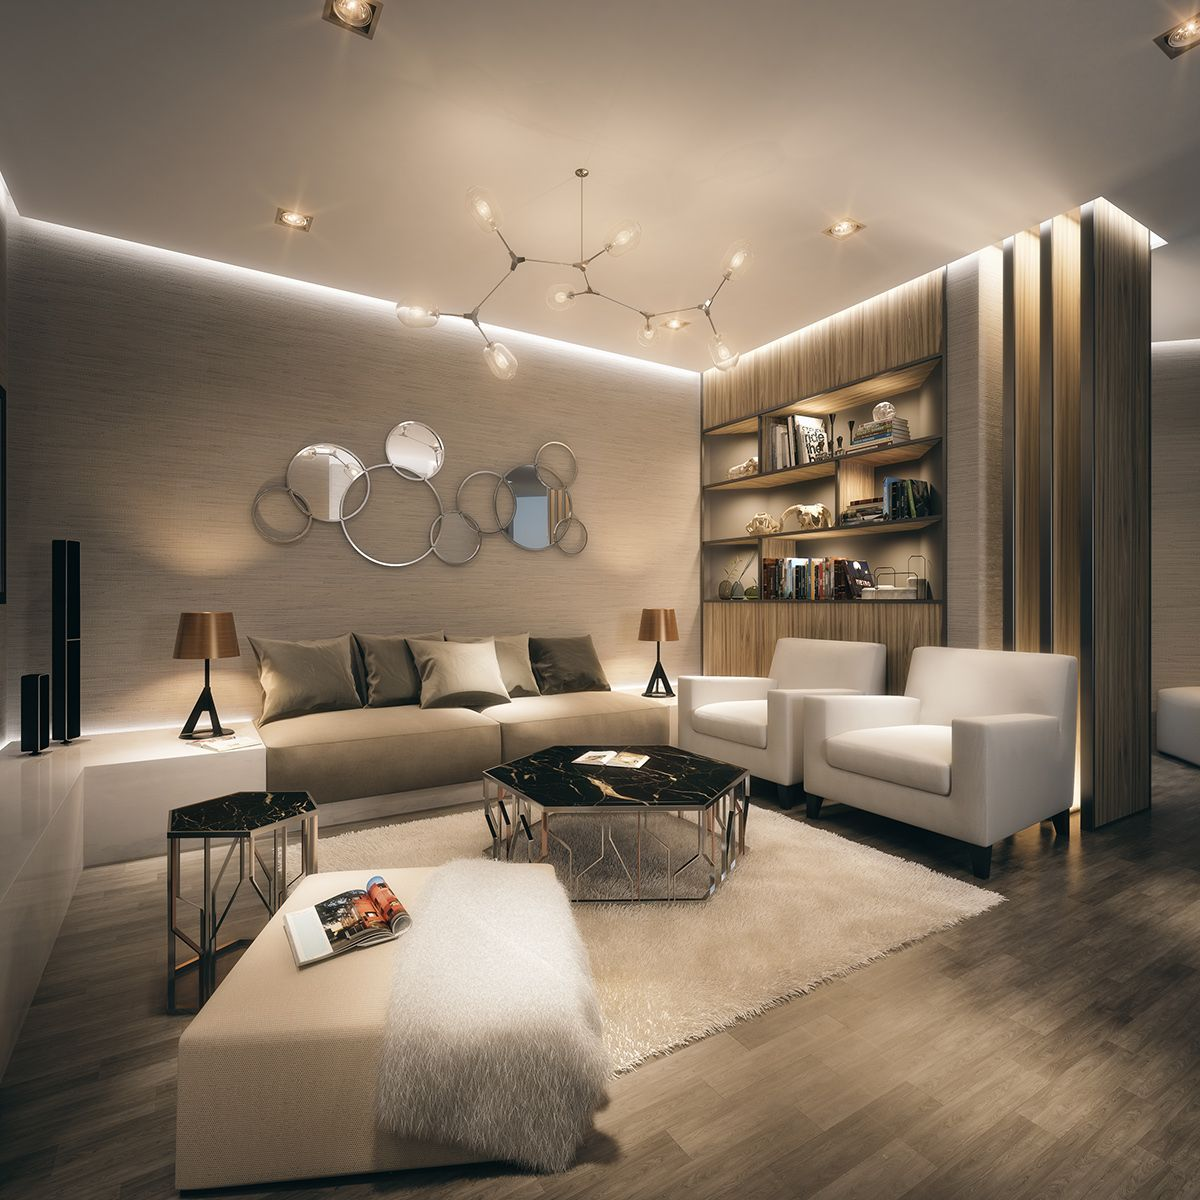 Luxury Living Room Interior Design Ideas: Private Luxury Apartments Complex In Western Africa. Full